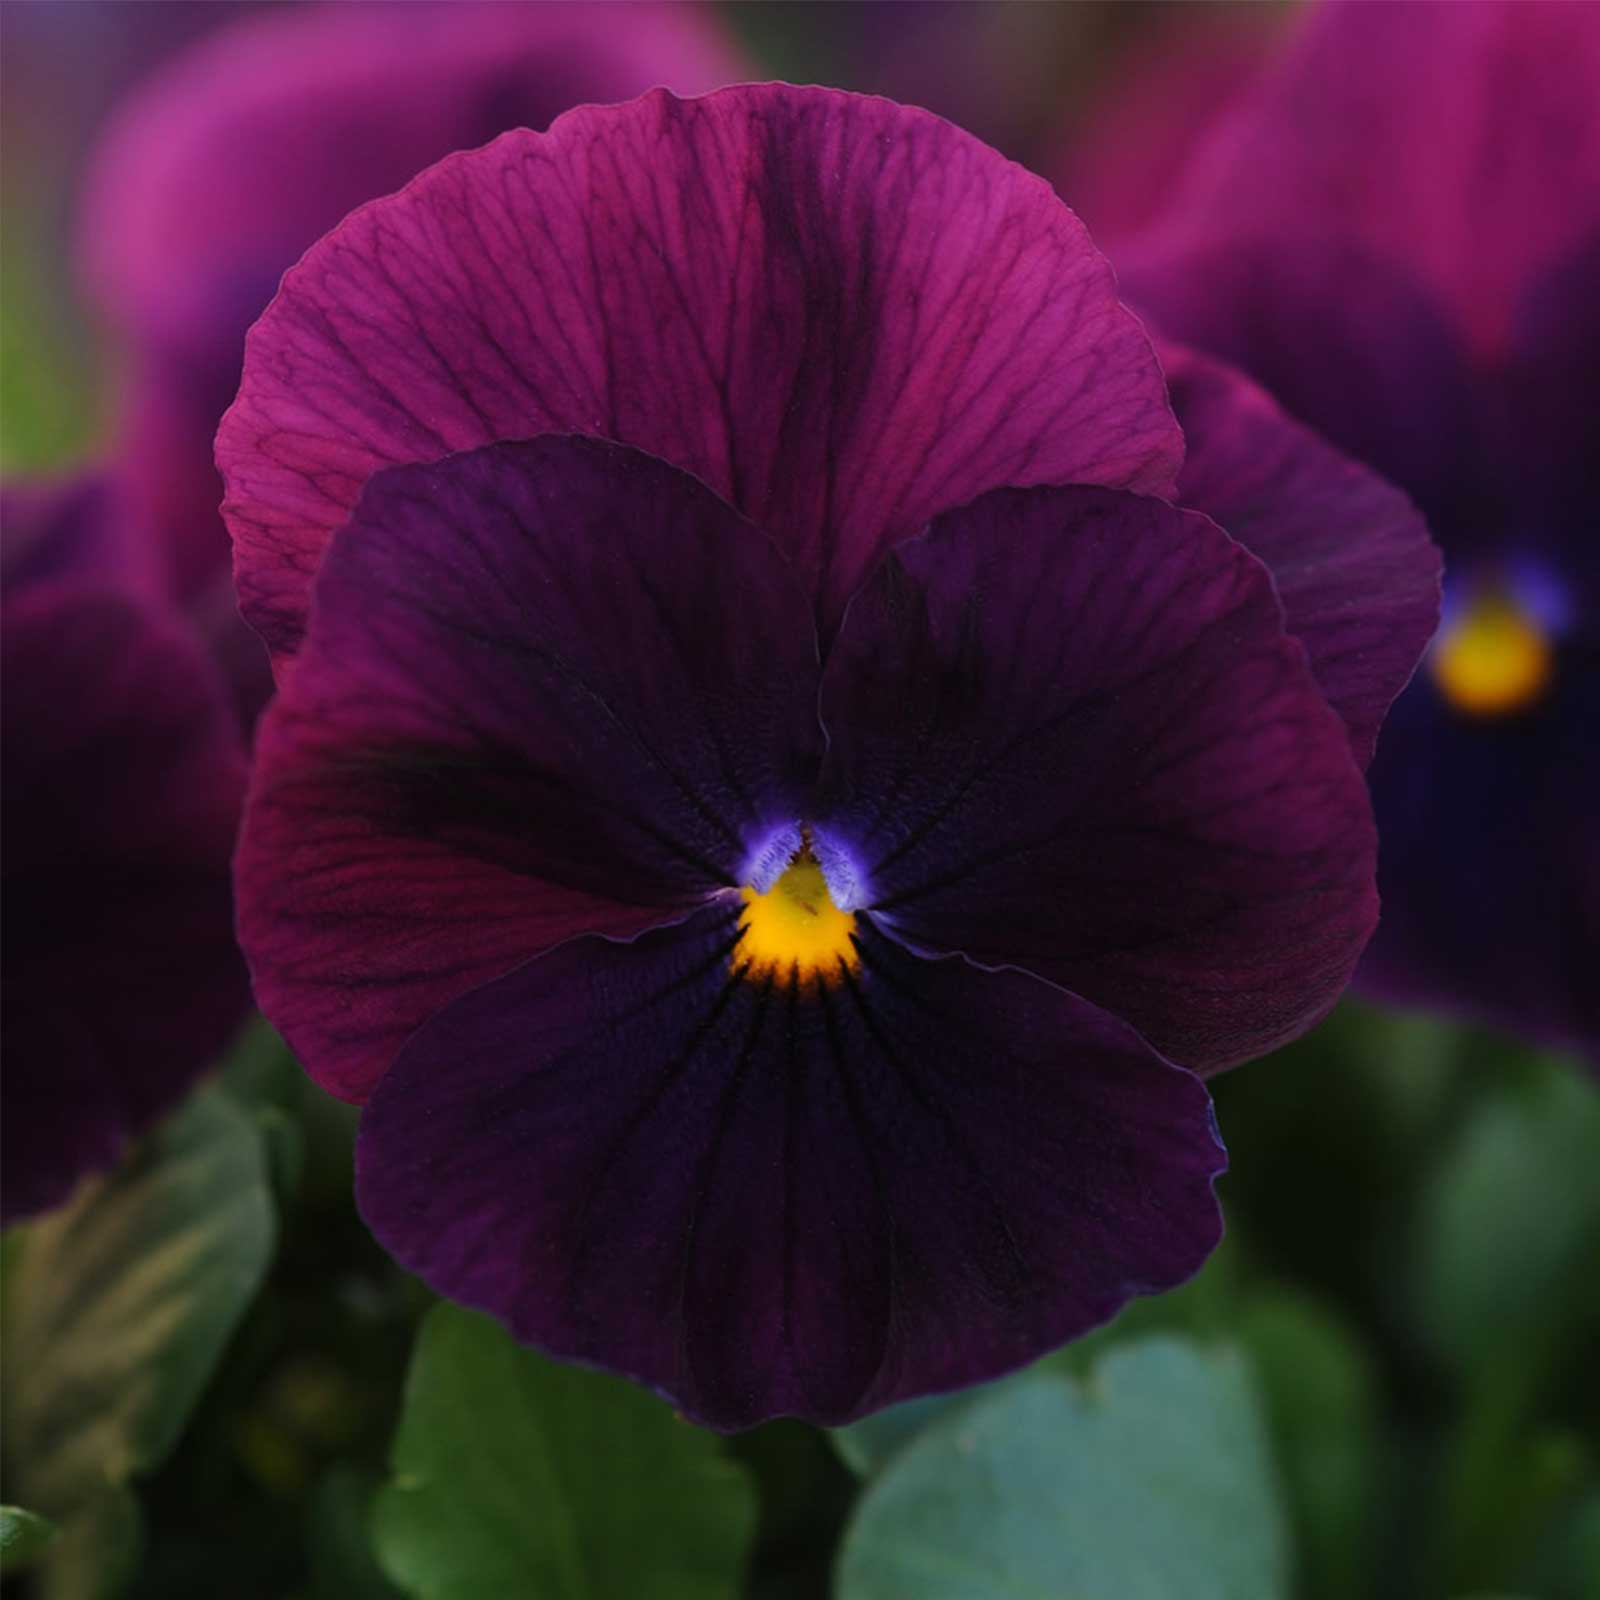 Pansy Flower Garden Seeds - Cool Wave Series - Frost - 100 Seeds - Annual Flower Gardening Seed